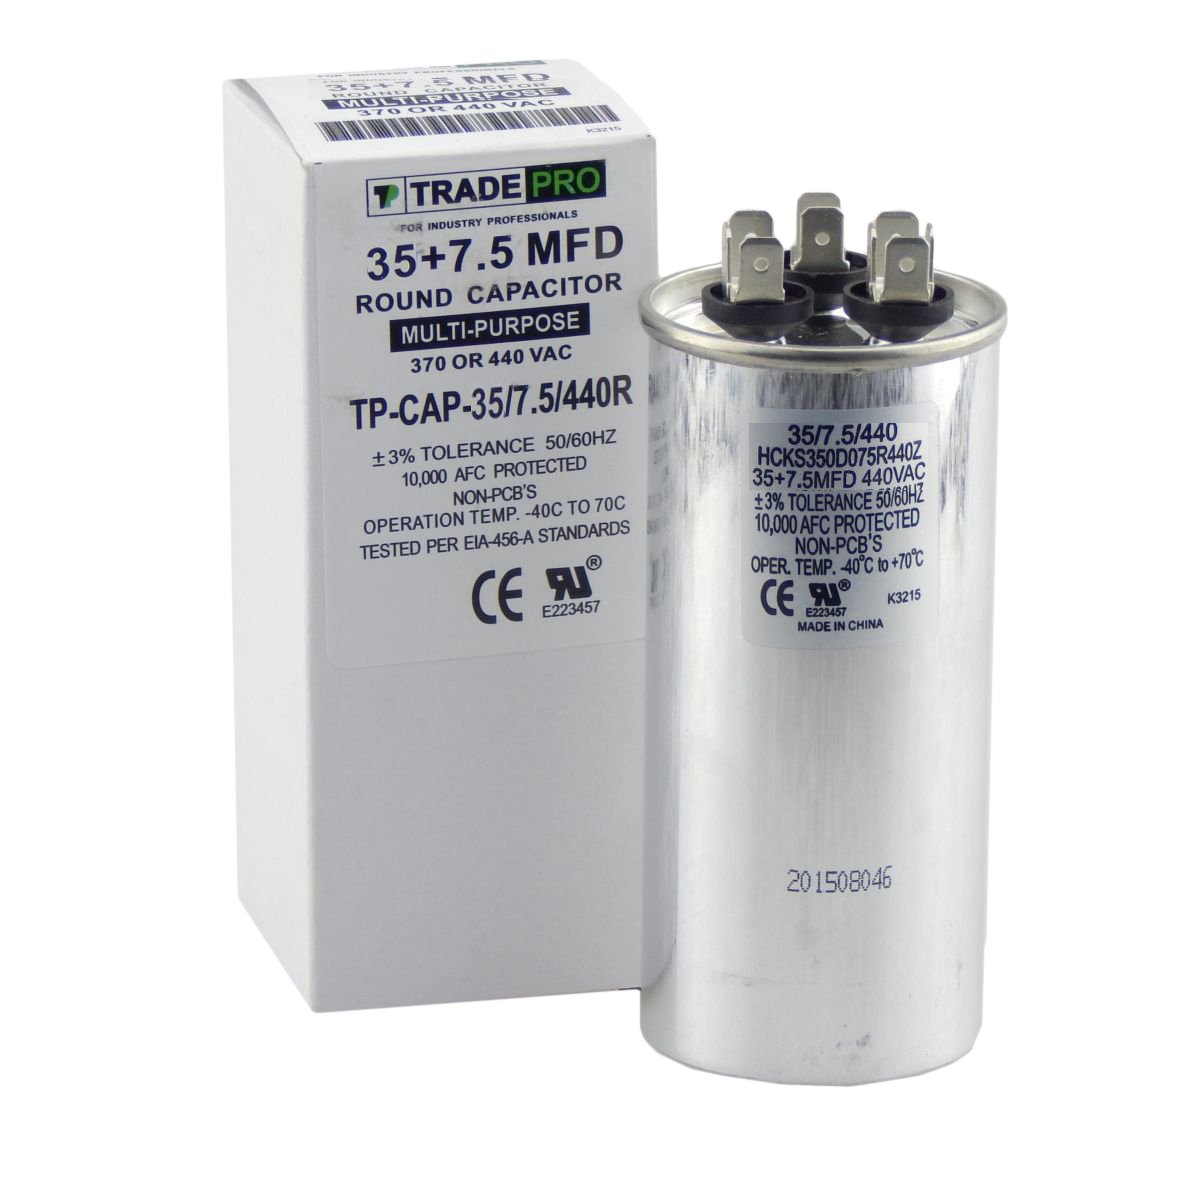 30 + 7.5 mfd Dual Capacitor, Industrial Grade Replacement for Central Air-Conditioners, Heat Pumps, Condenser Fan Motors, and Compressors. Round Multi-Purpose 370/440 Volt - by Trade Pro TradePro